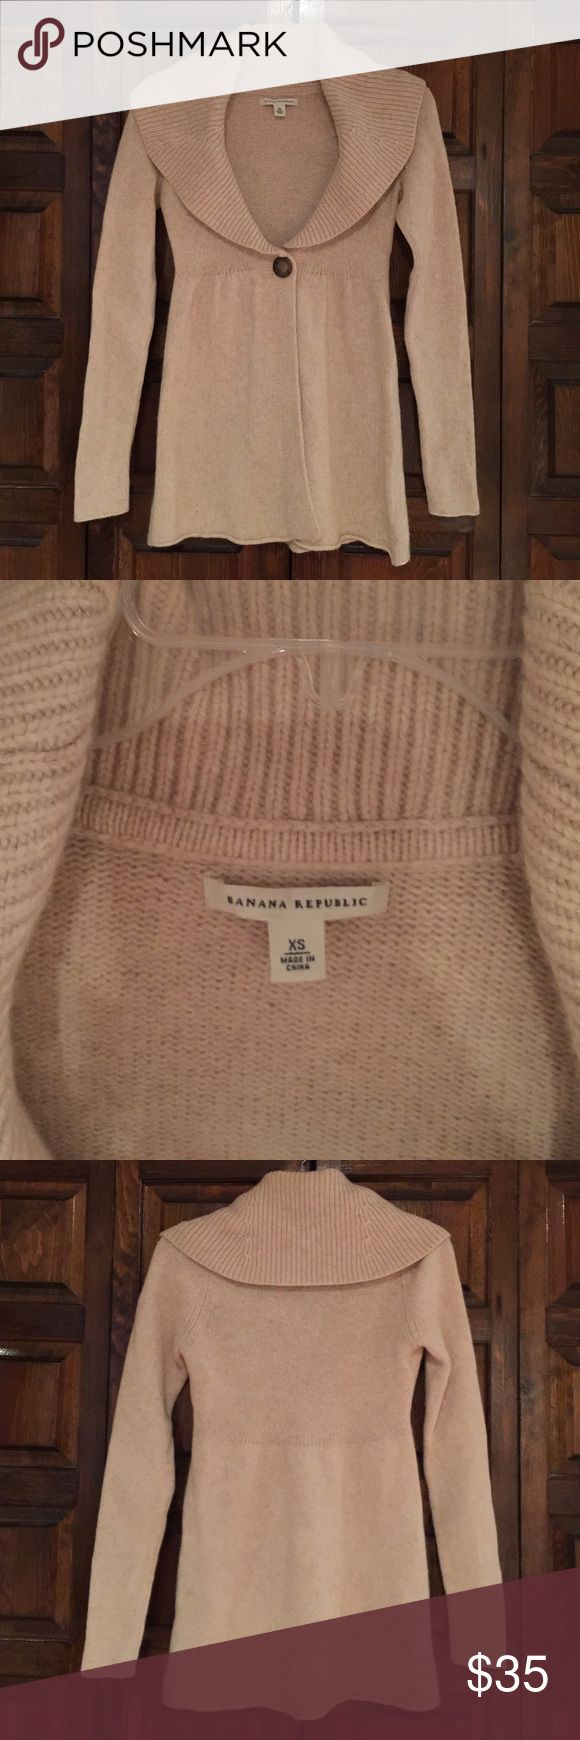 Banana Republic sweater - size XS Banana Republic sweater- size XS. Excellent condition! Color is oatmeal/cream. Soft! Looks fabulous with jeans and boots. Please note: lighting is dark. New photos to come when the sun makes an appearance :) Banana Republic Sweaters